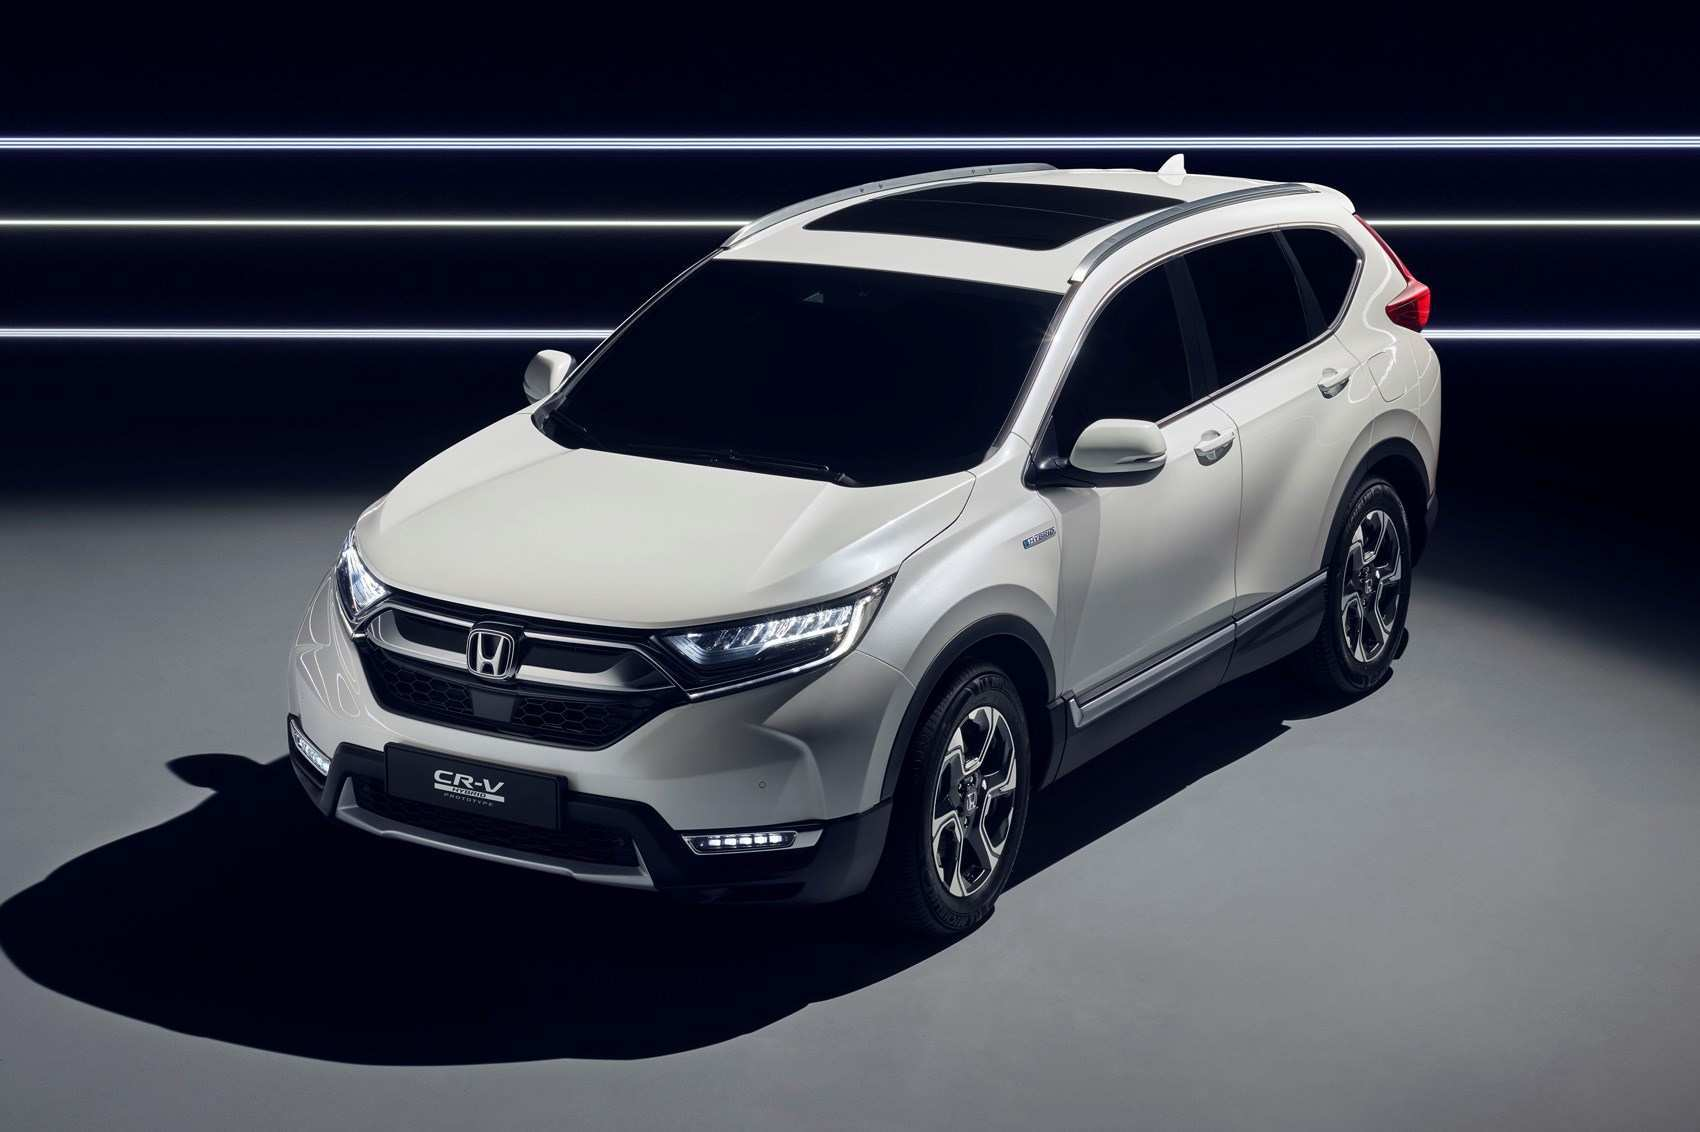 12 All New Honda Crv 2020 Release Date Performance And New Engine